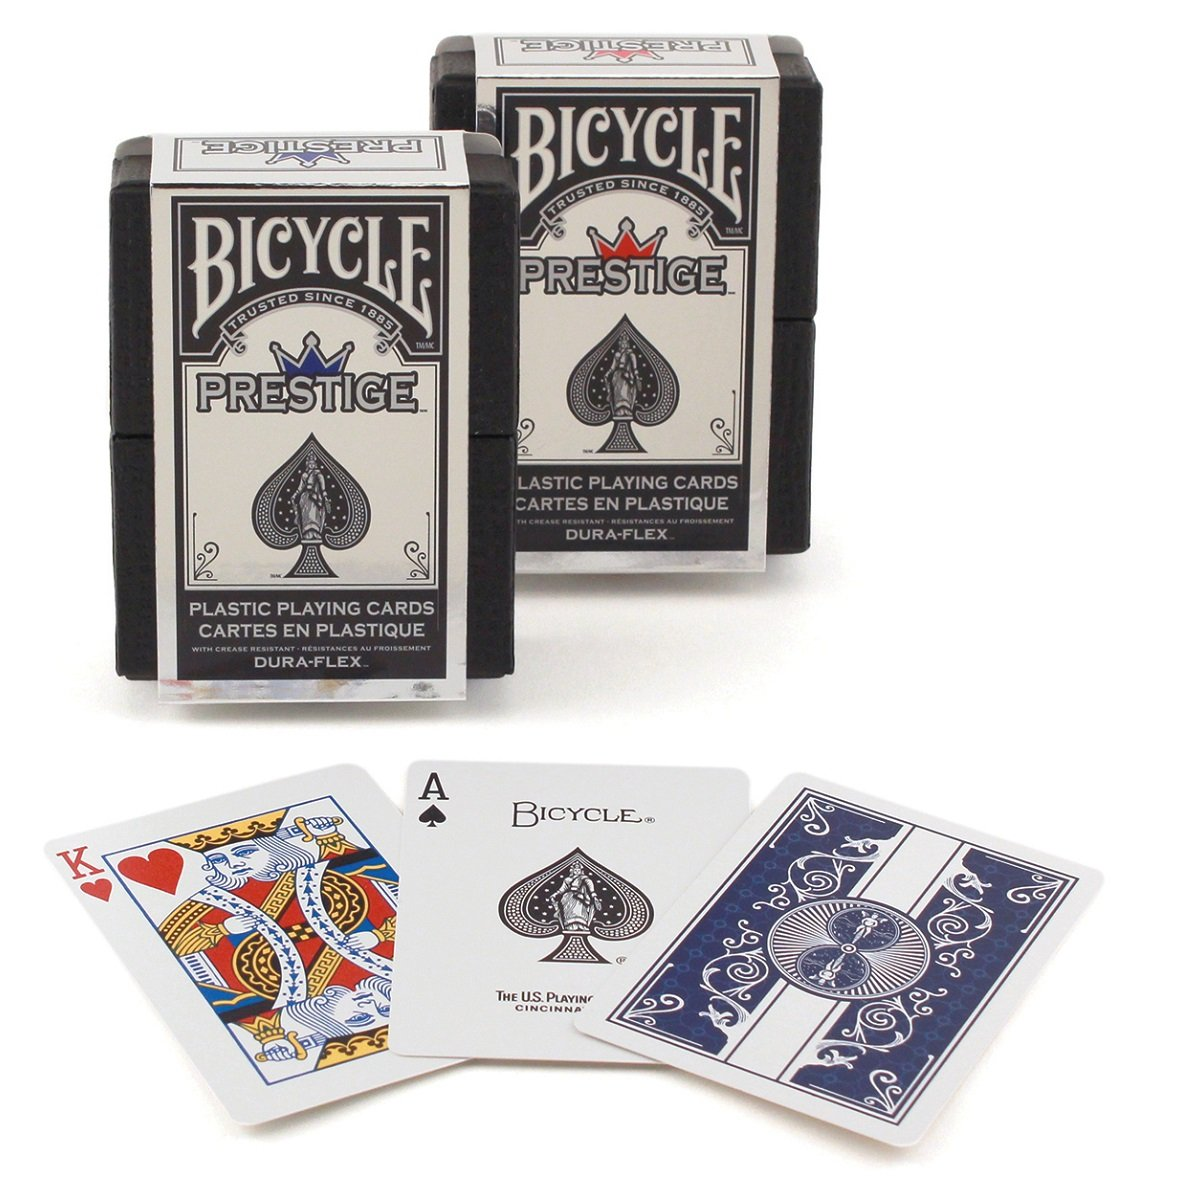 Bicycle Prestige Plastic Playing Cards (Pack of 2) by Bicycle